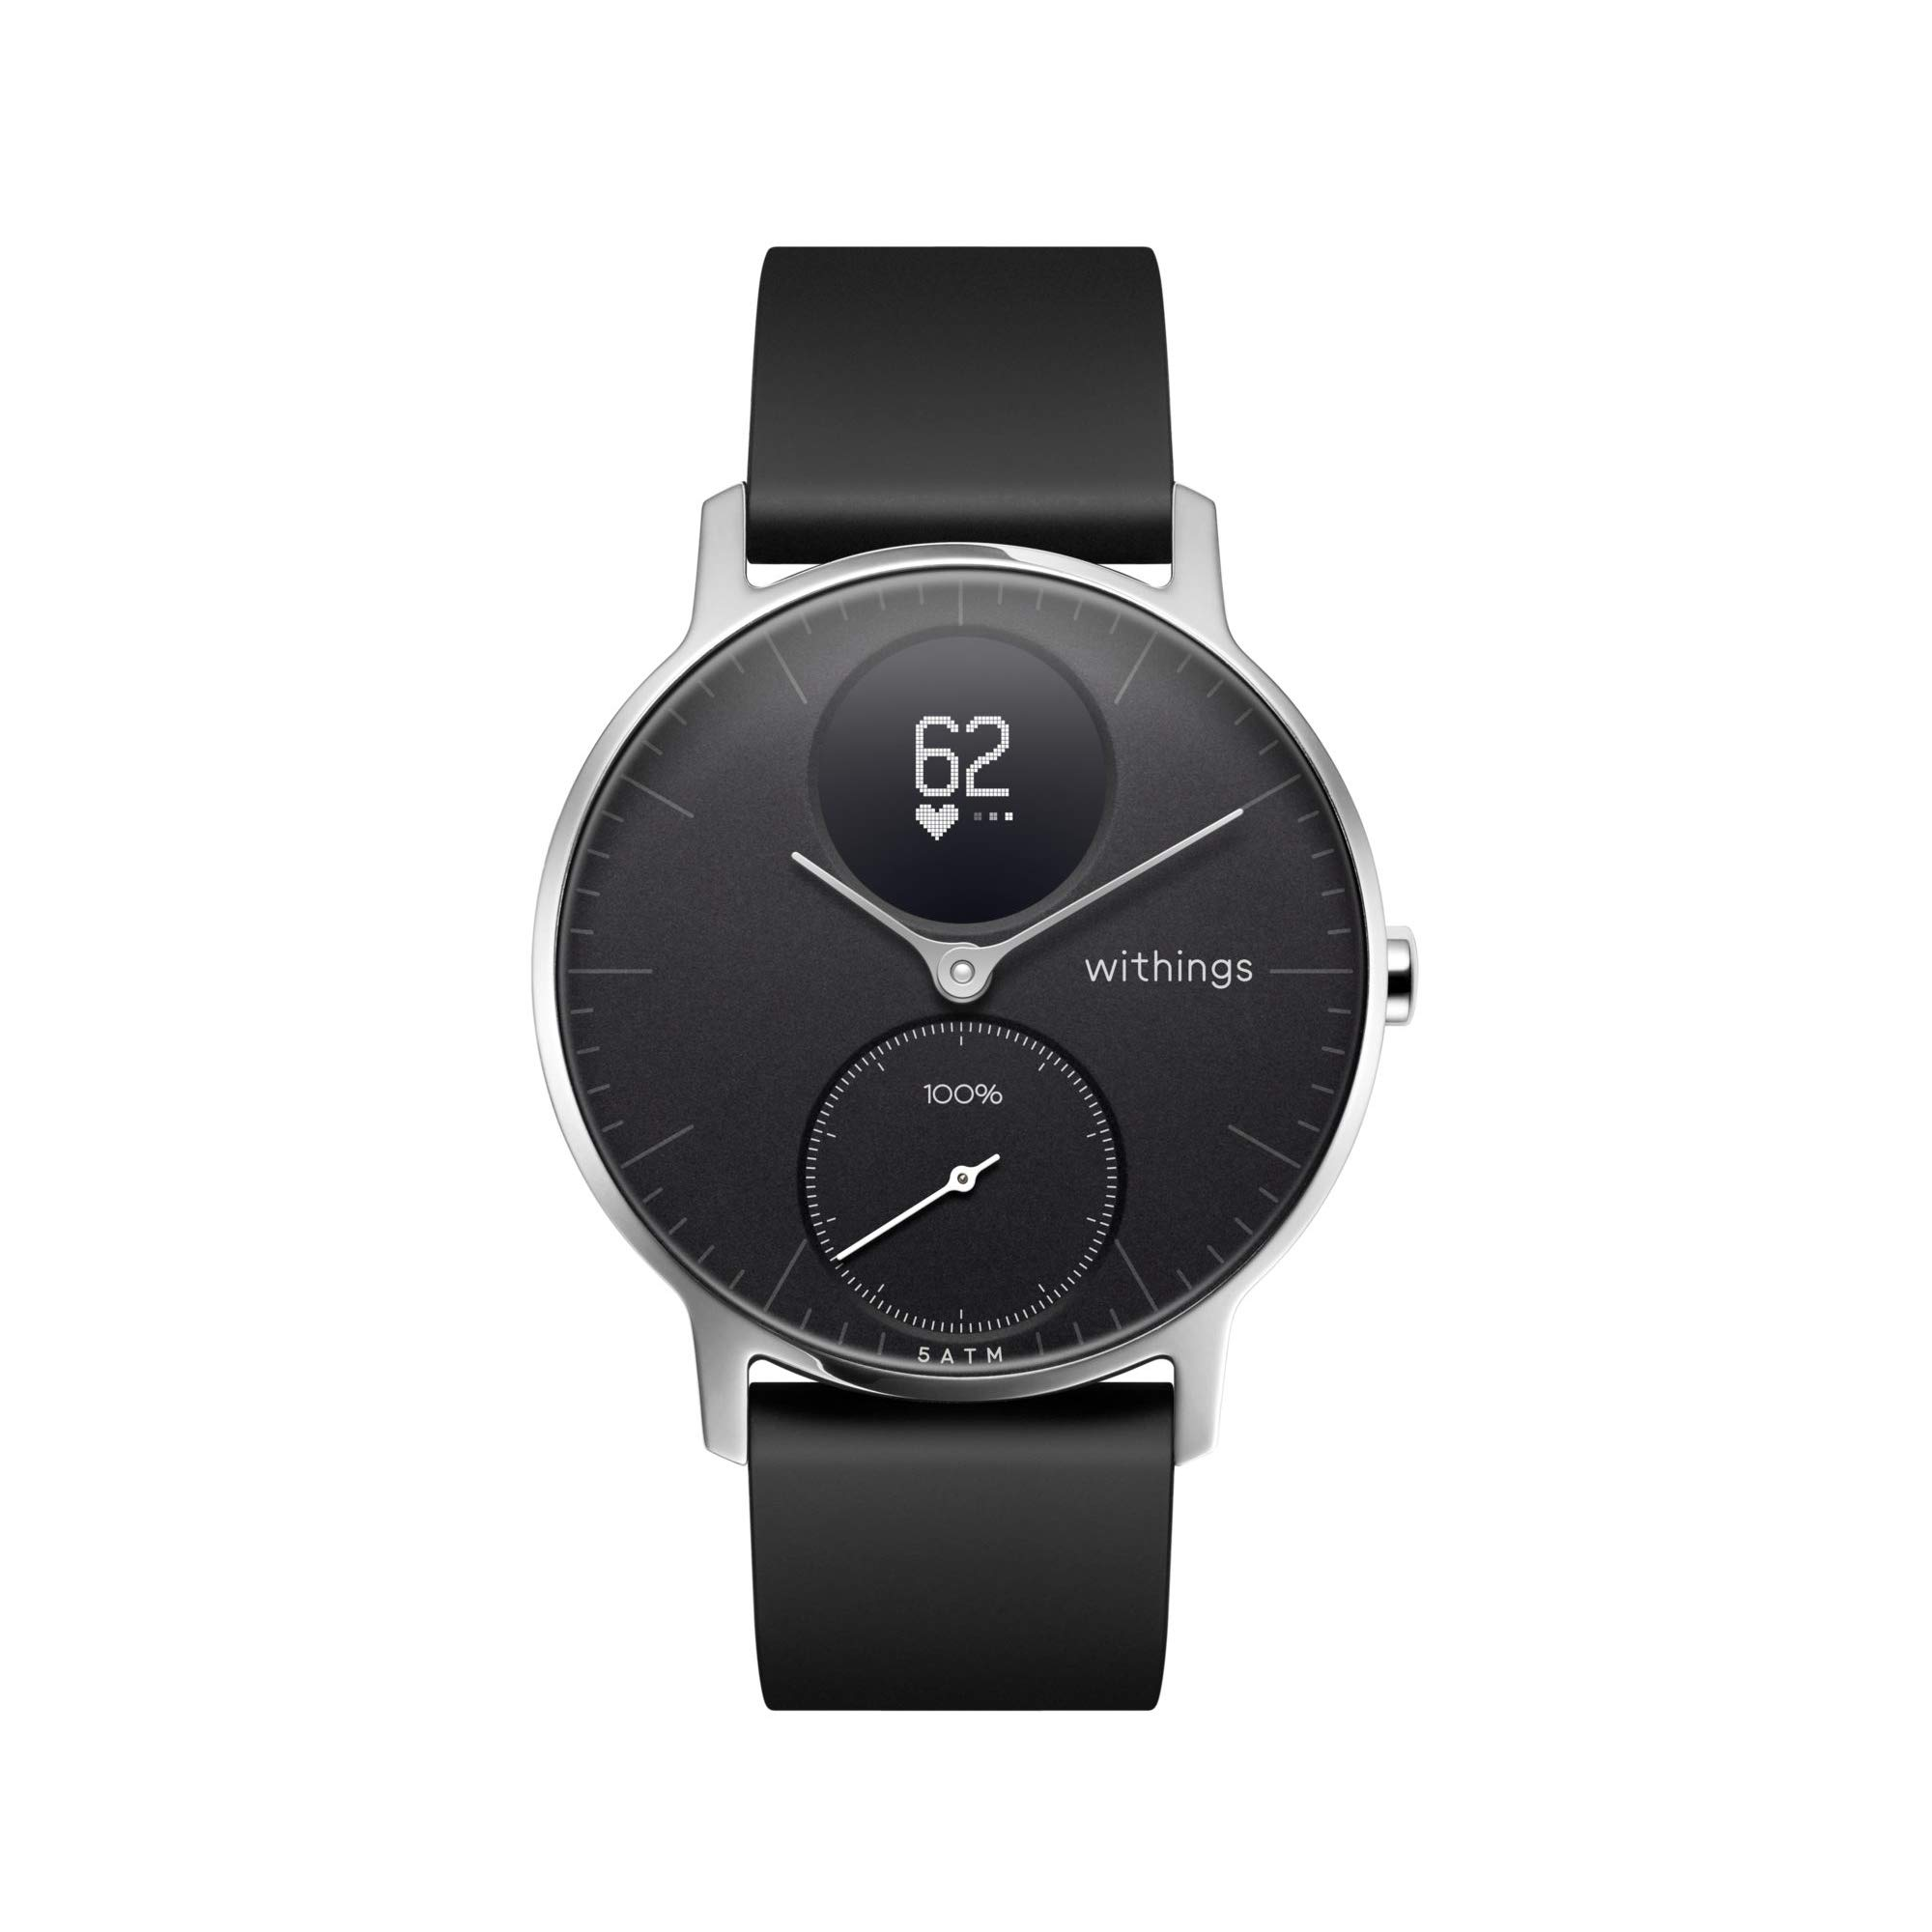 Withings Steel HR Hybrid Smartwatch - Activity Sleep Fitness and Heart Rate Tracker with Connected GPS